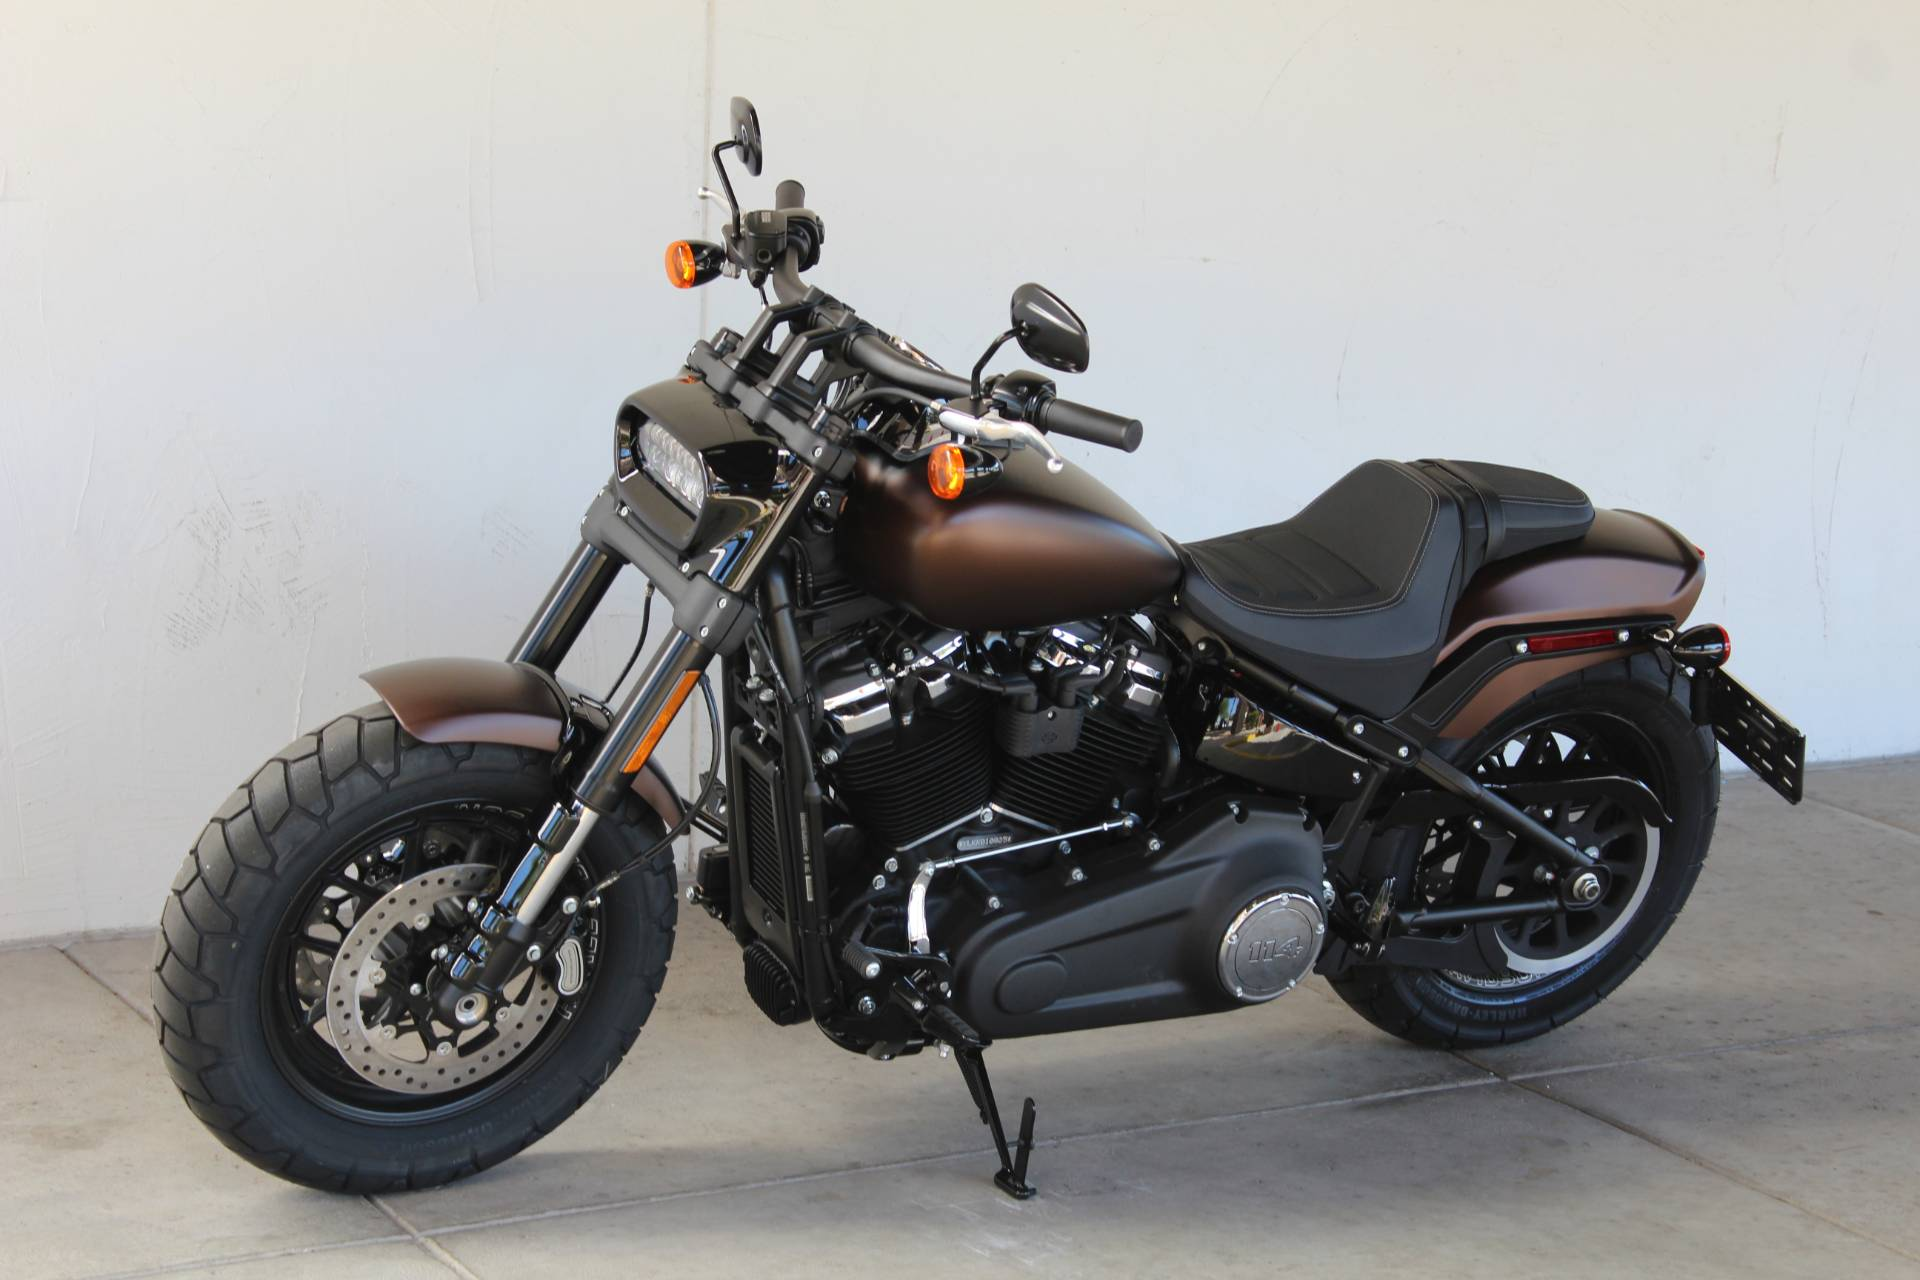 2019 Harley Davidson Fxdr 114 Motorcycles Junction City: 2019 Harley-Davidson Fat Bob 114 Motorcycles Apache